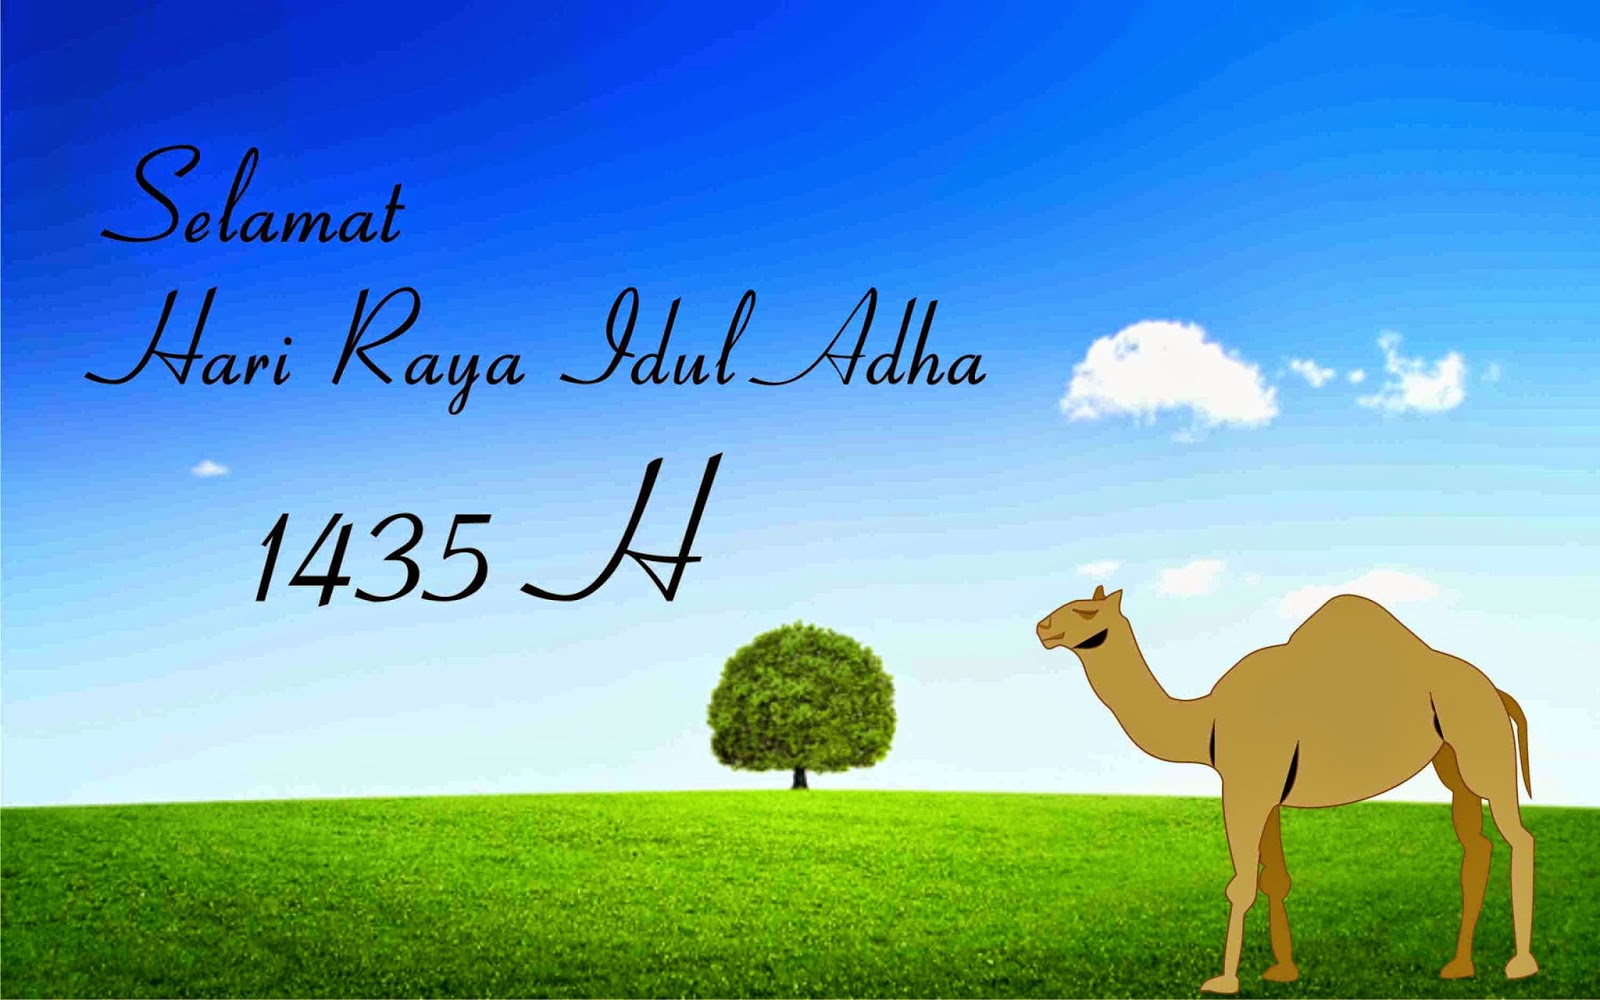 Download 8800 Background Keren Idul Adha Paling Keren